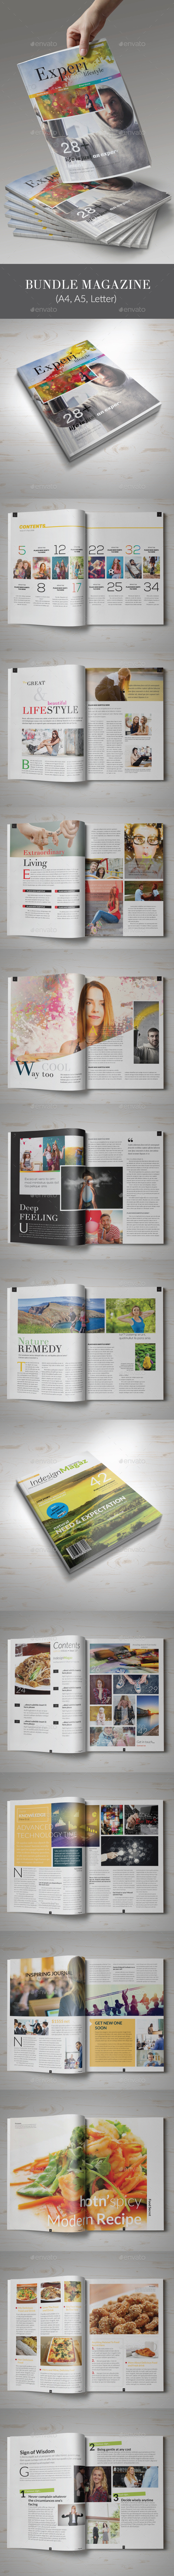 6th Bundle Magazine - Magazines Print Templates